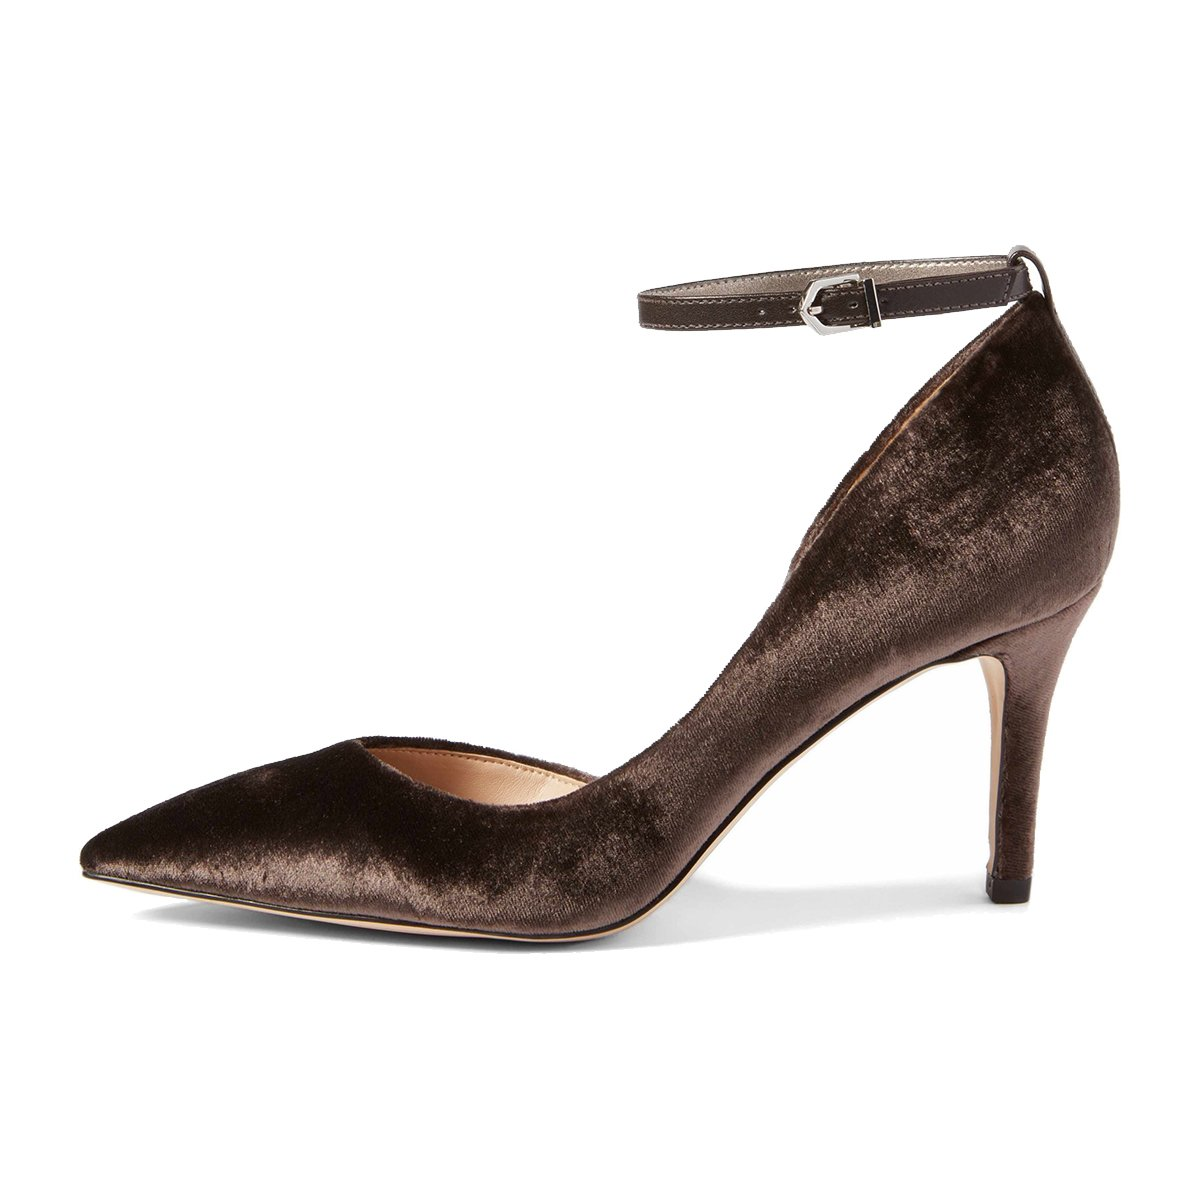 XYD Women Pointed Toe D'Orsay Mid Heel Pumps Party Ankle Strap Buckled Wedding Party Pumps Dress Shoes B078XQFGXW 12 B(M) US|Dark Goldenrod 66cb19